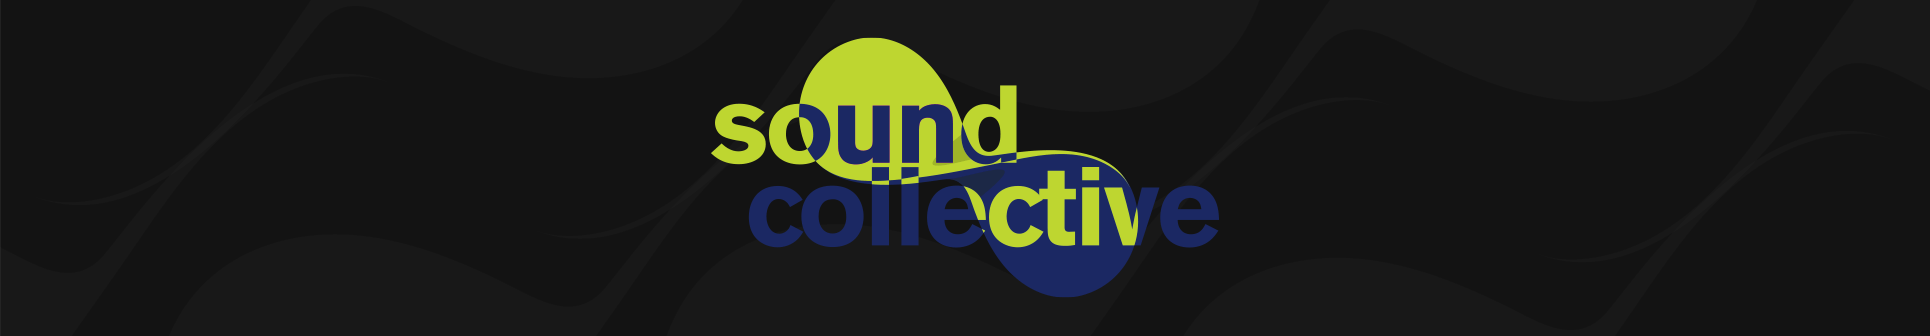 Sound Collective Landing Page Banner